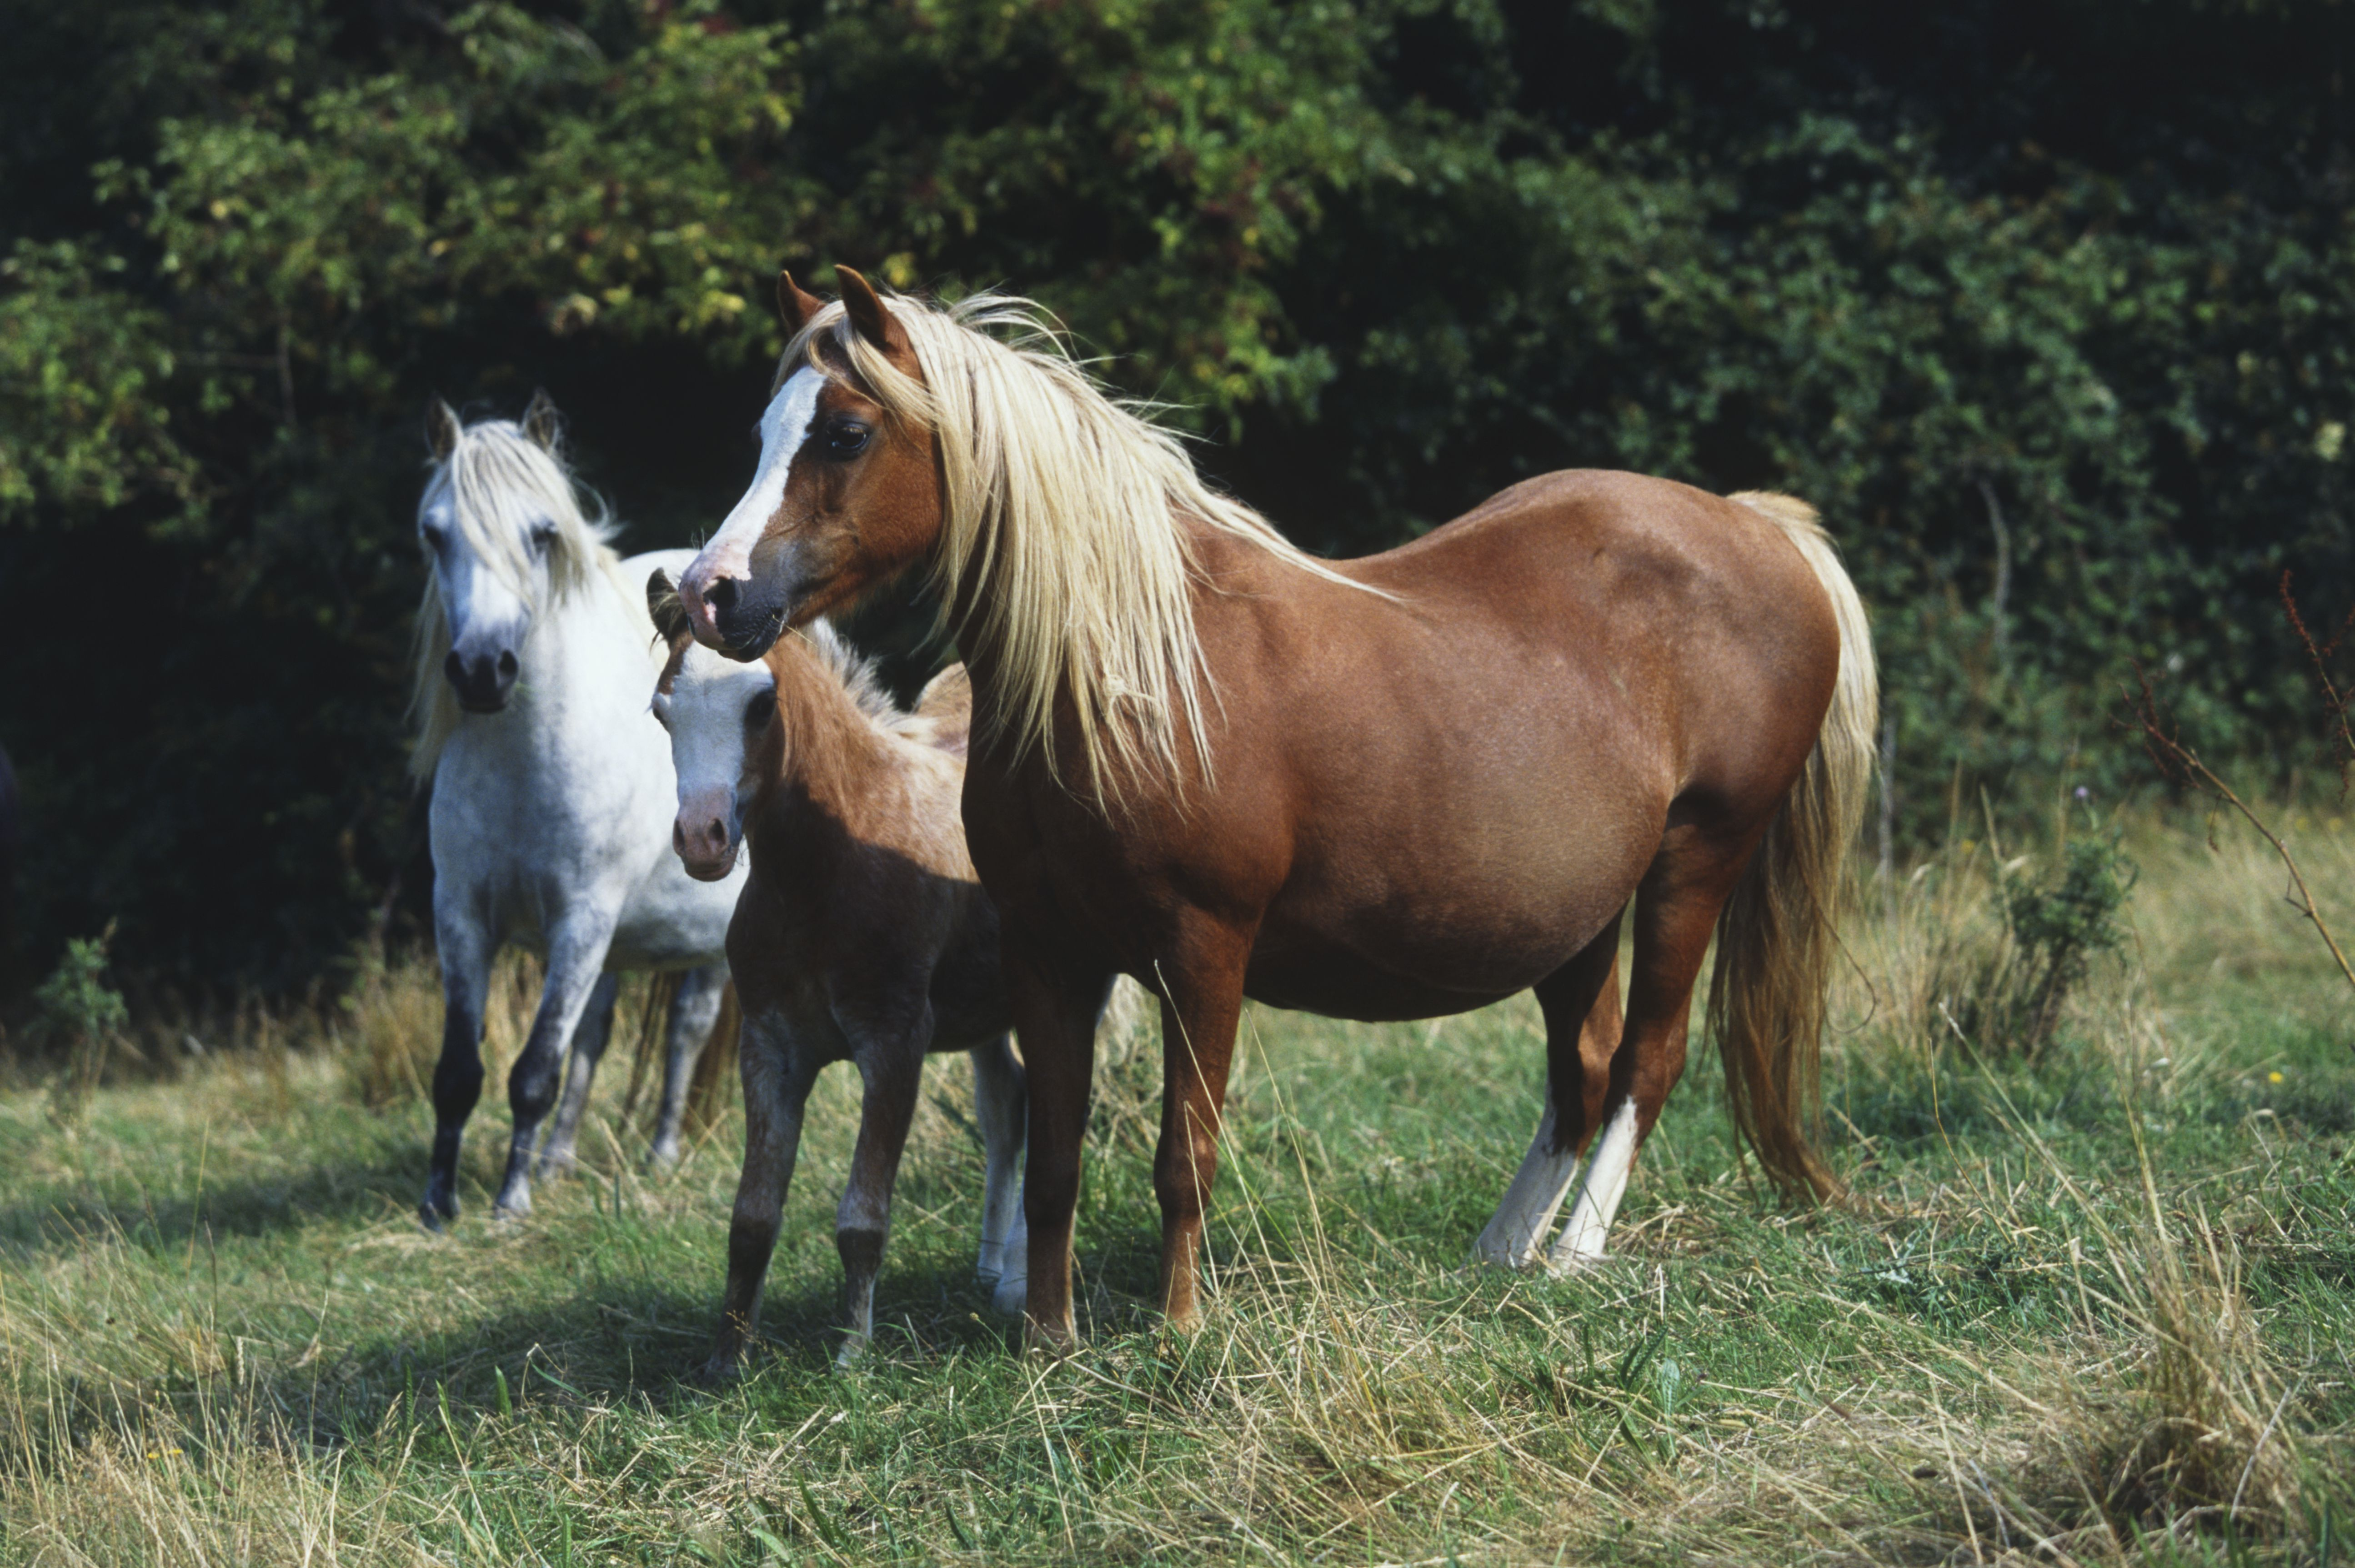 Mares and foal